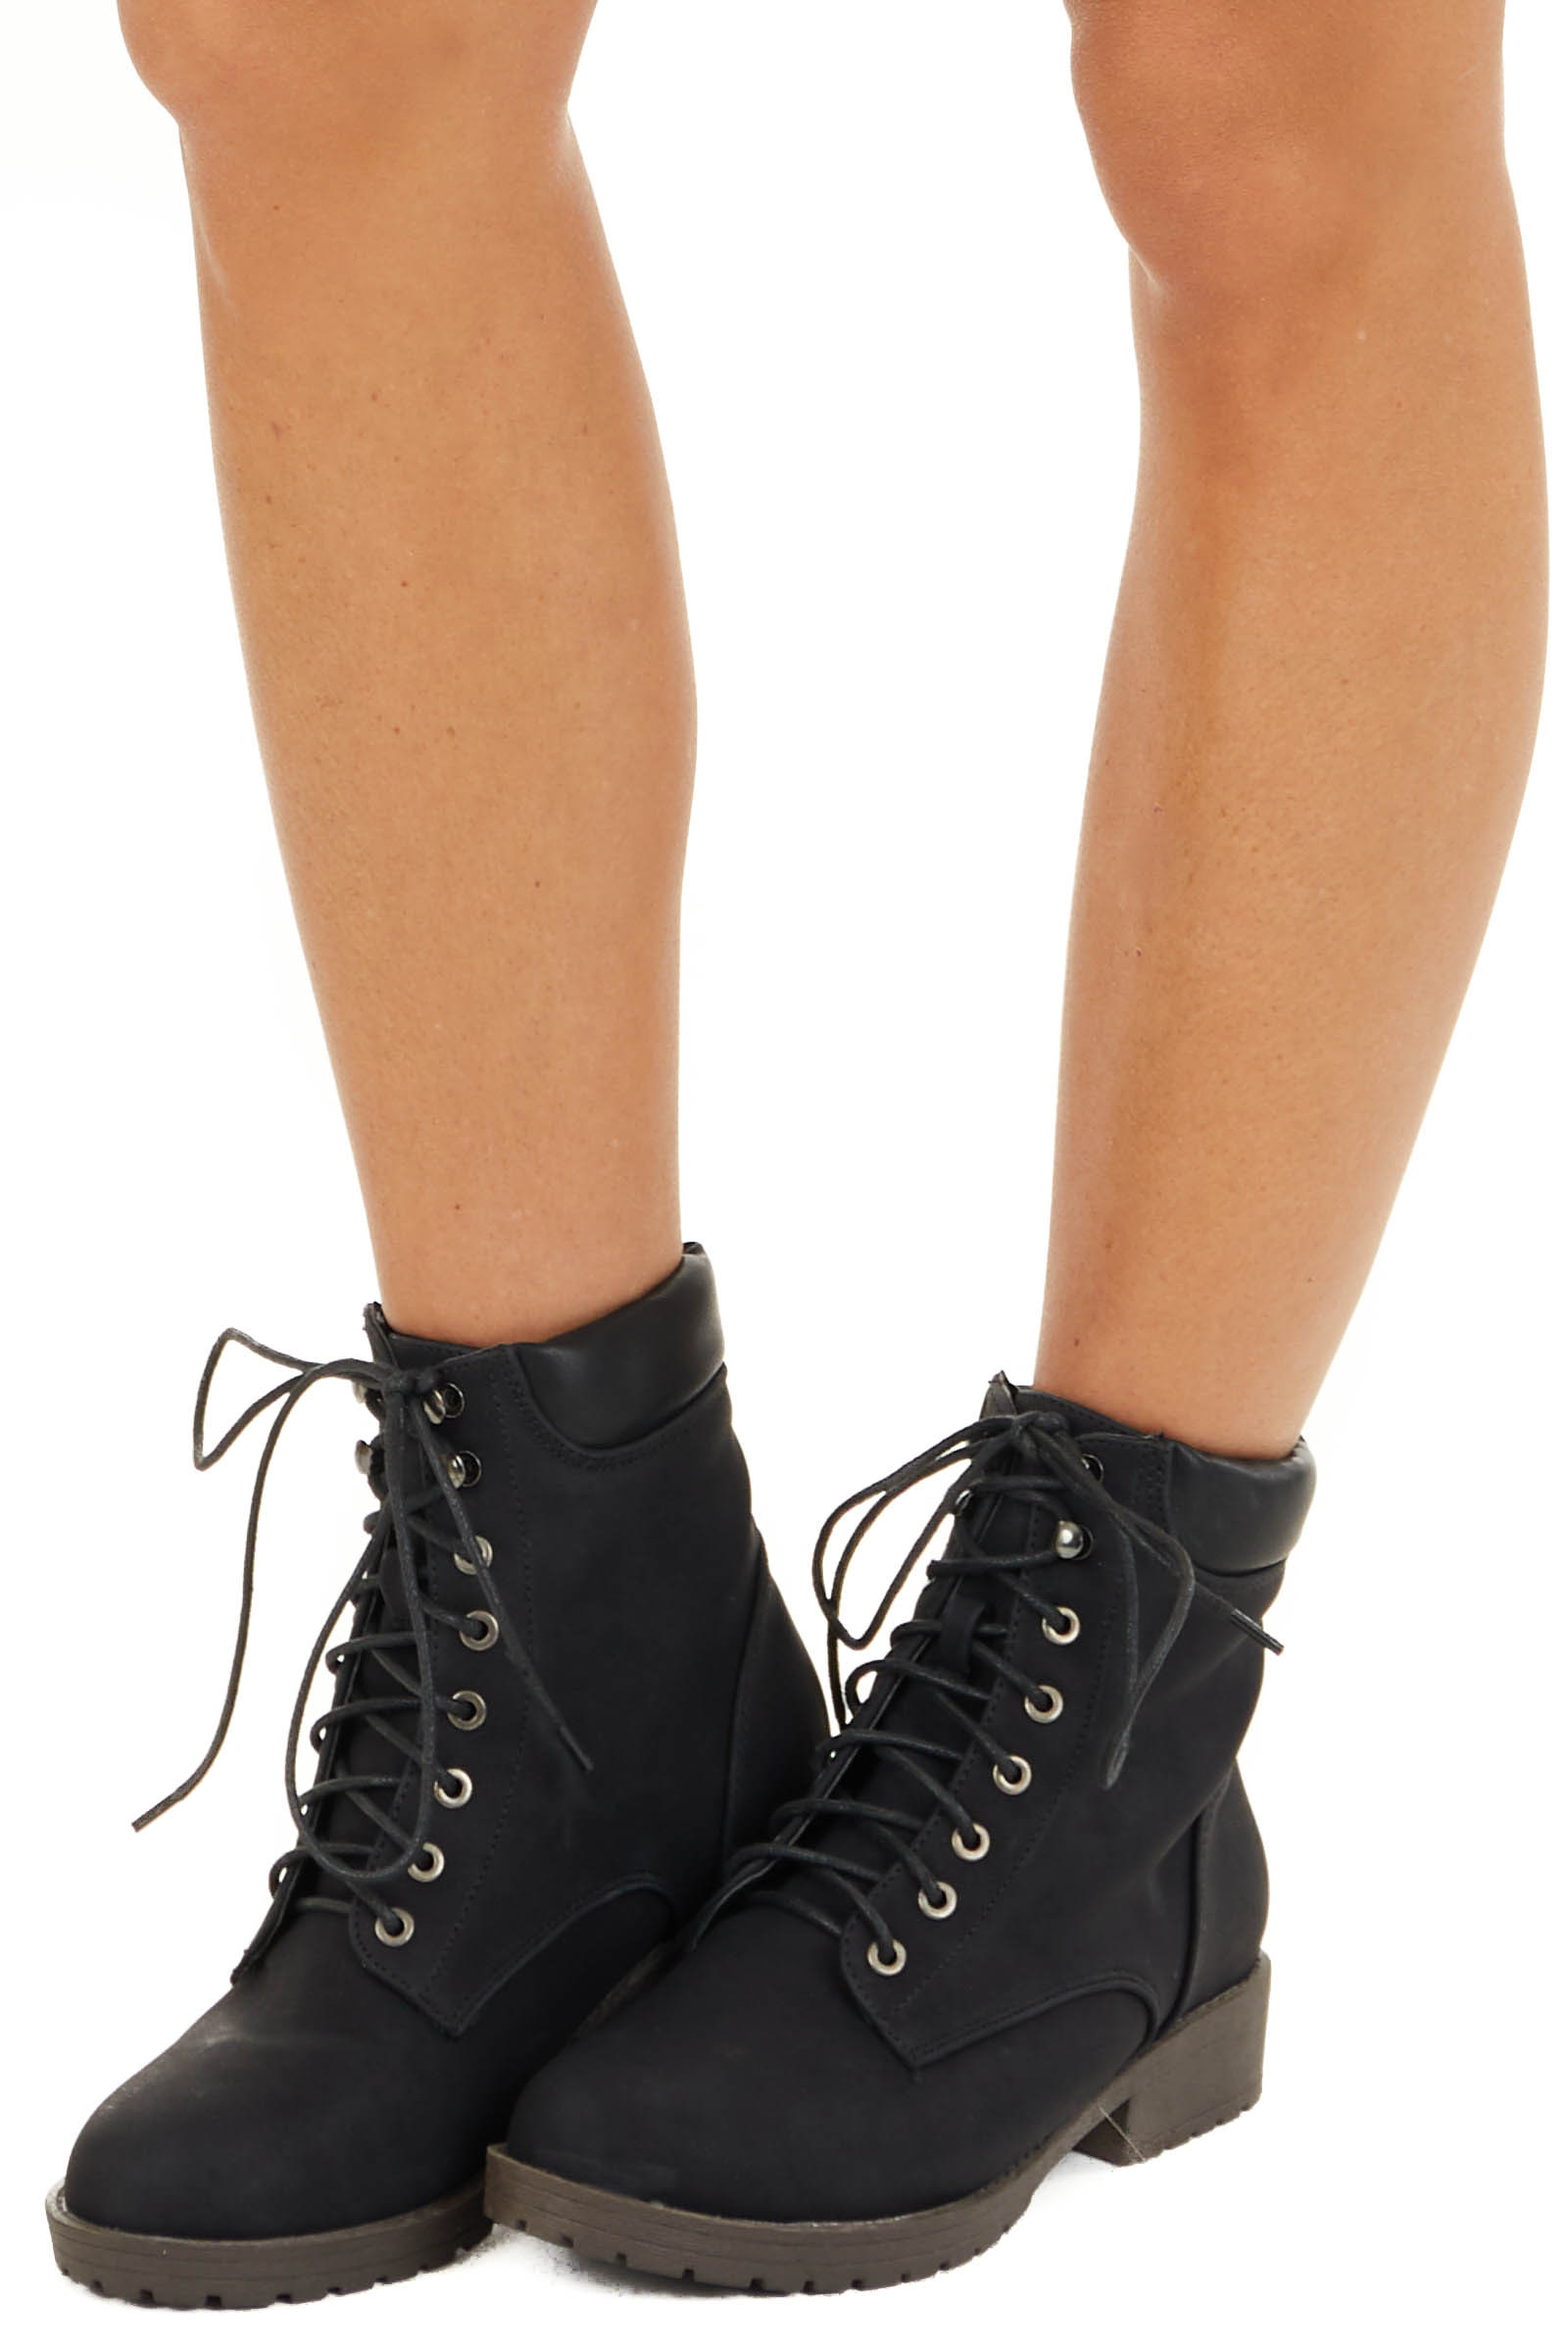 Black Heeled Combat Boots with Lace Up Front side view